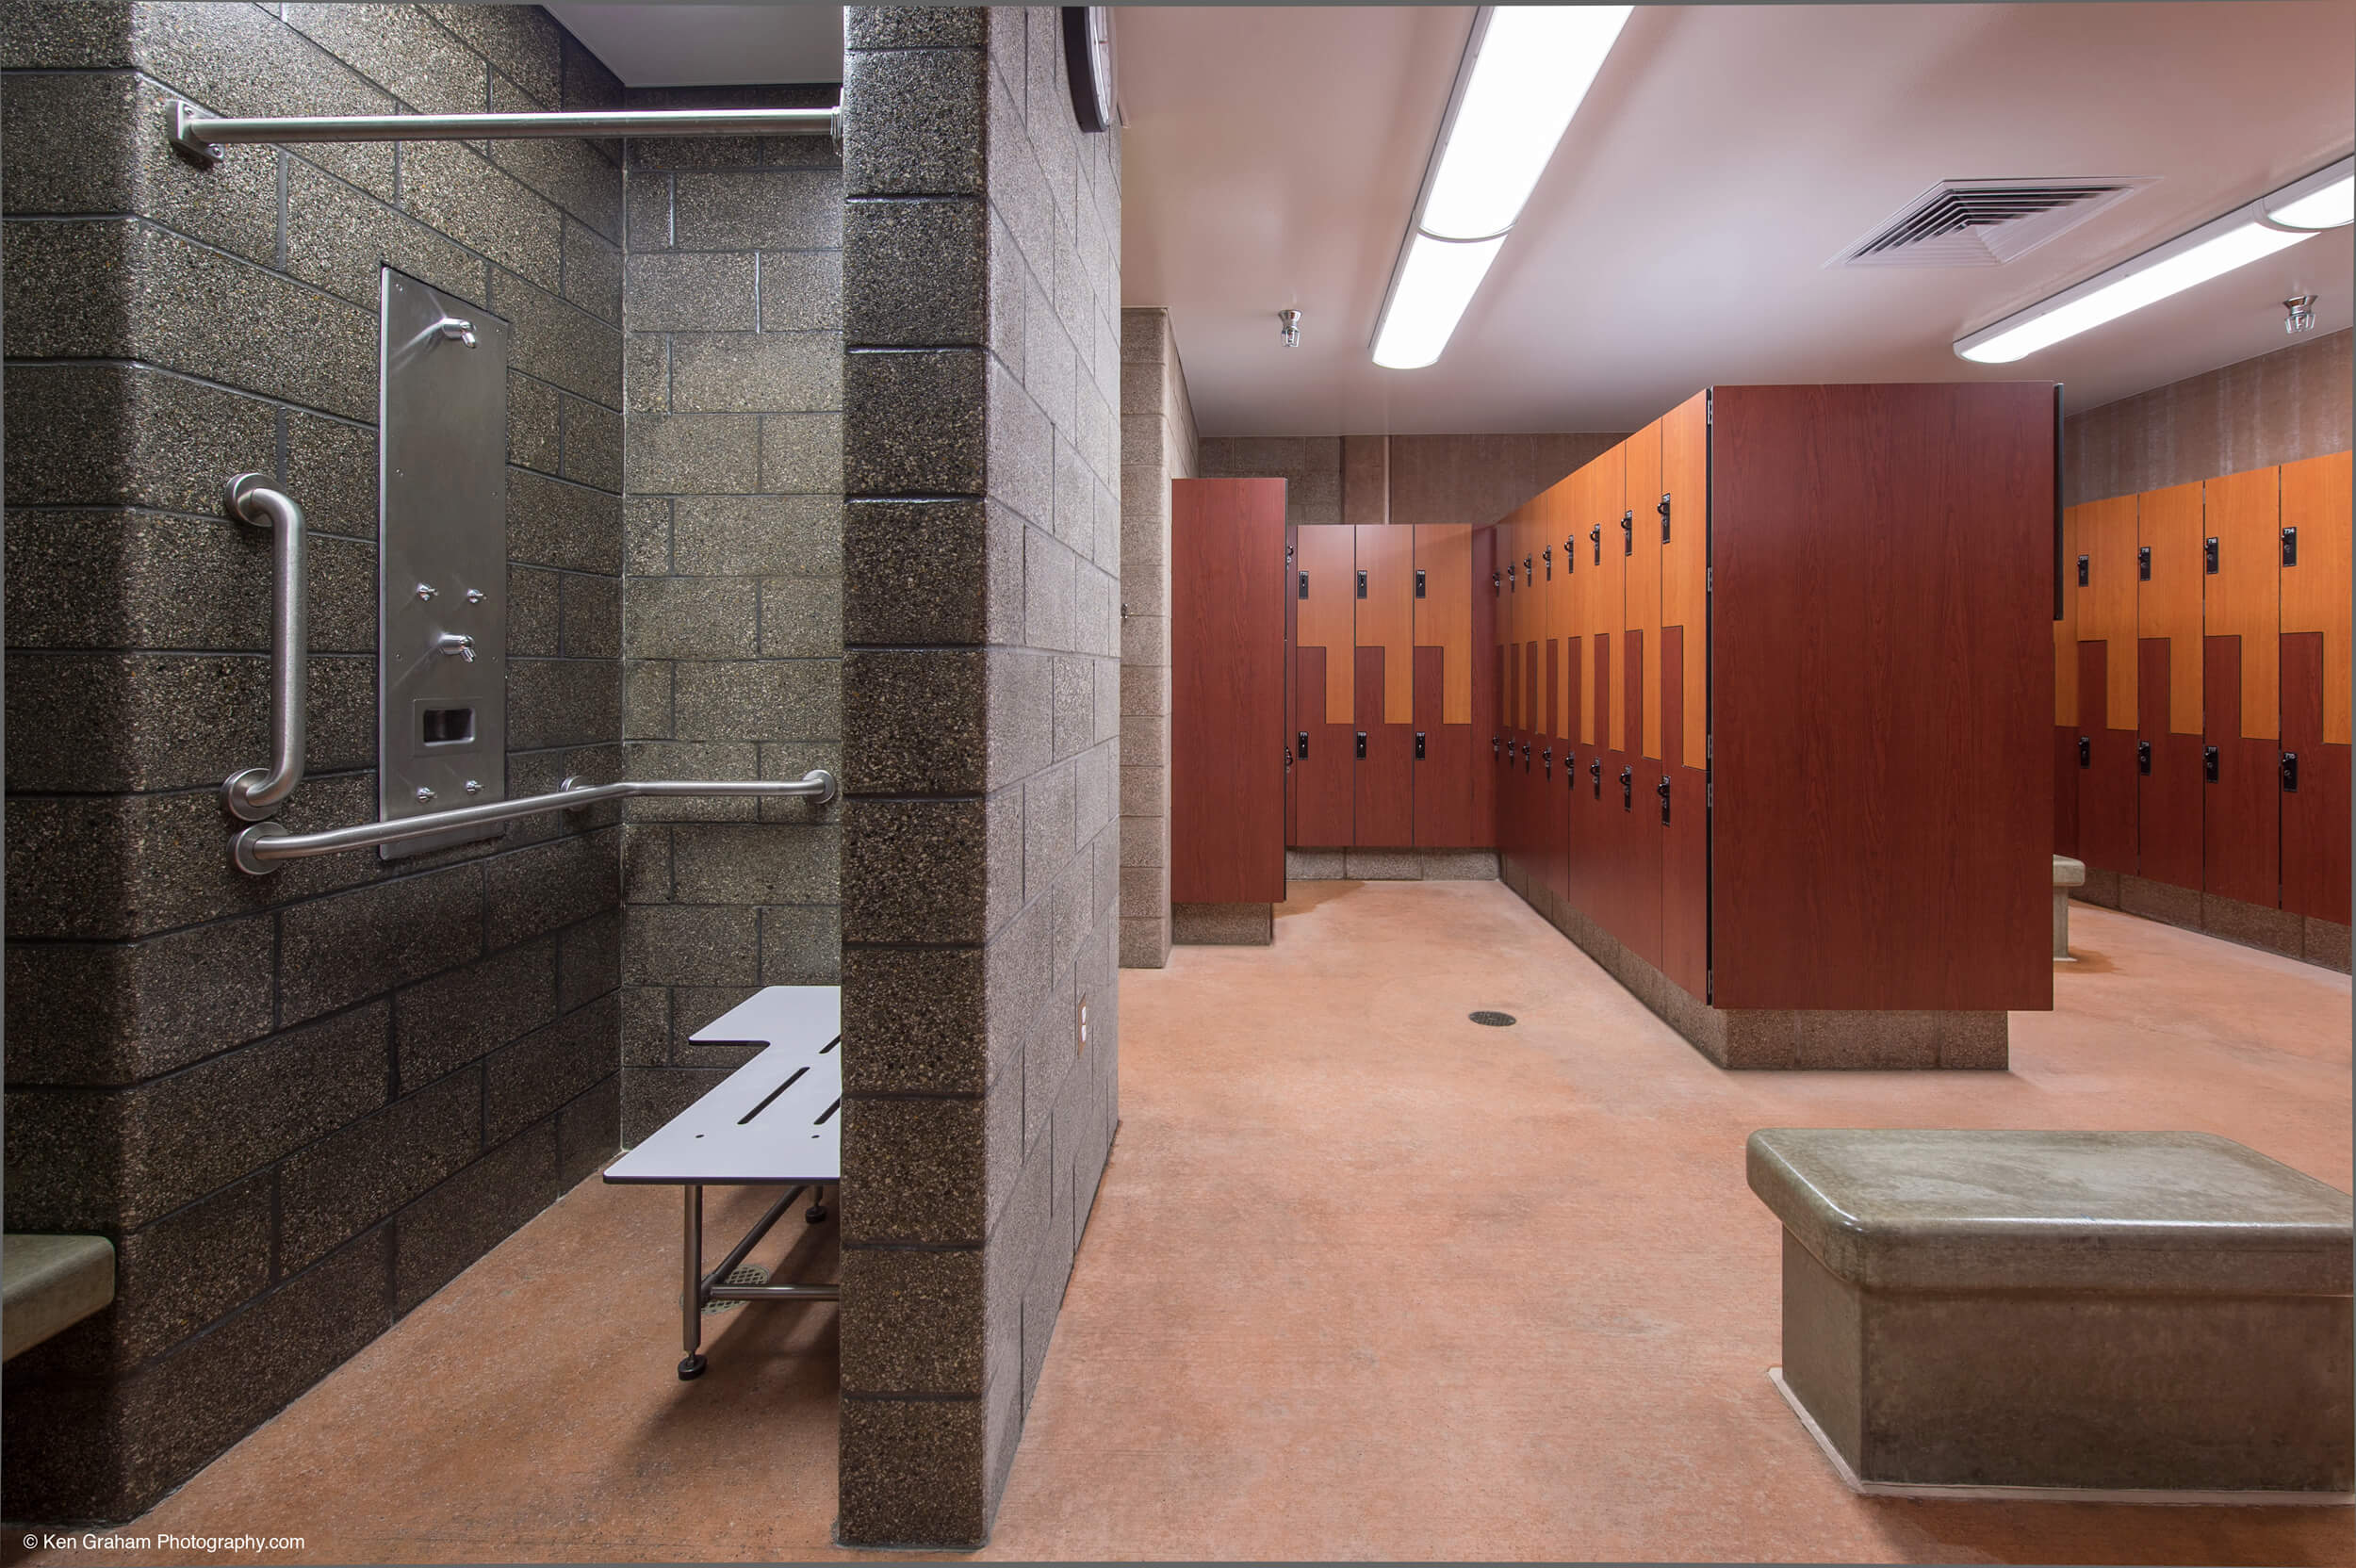 Ketchikan Aquatic Center Locker Room